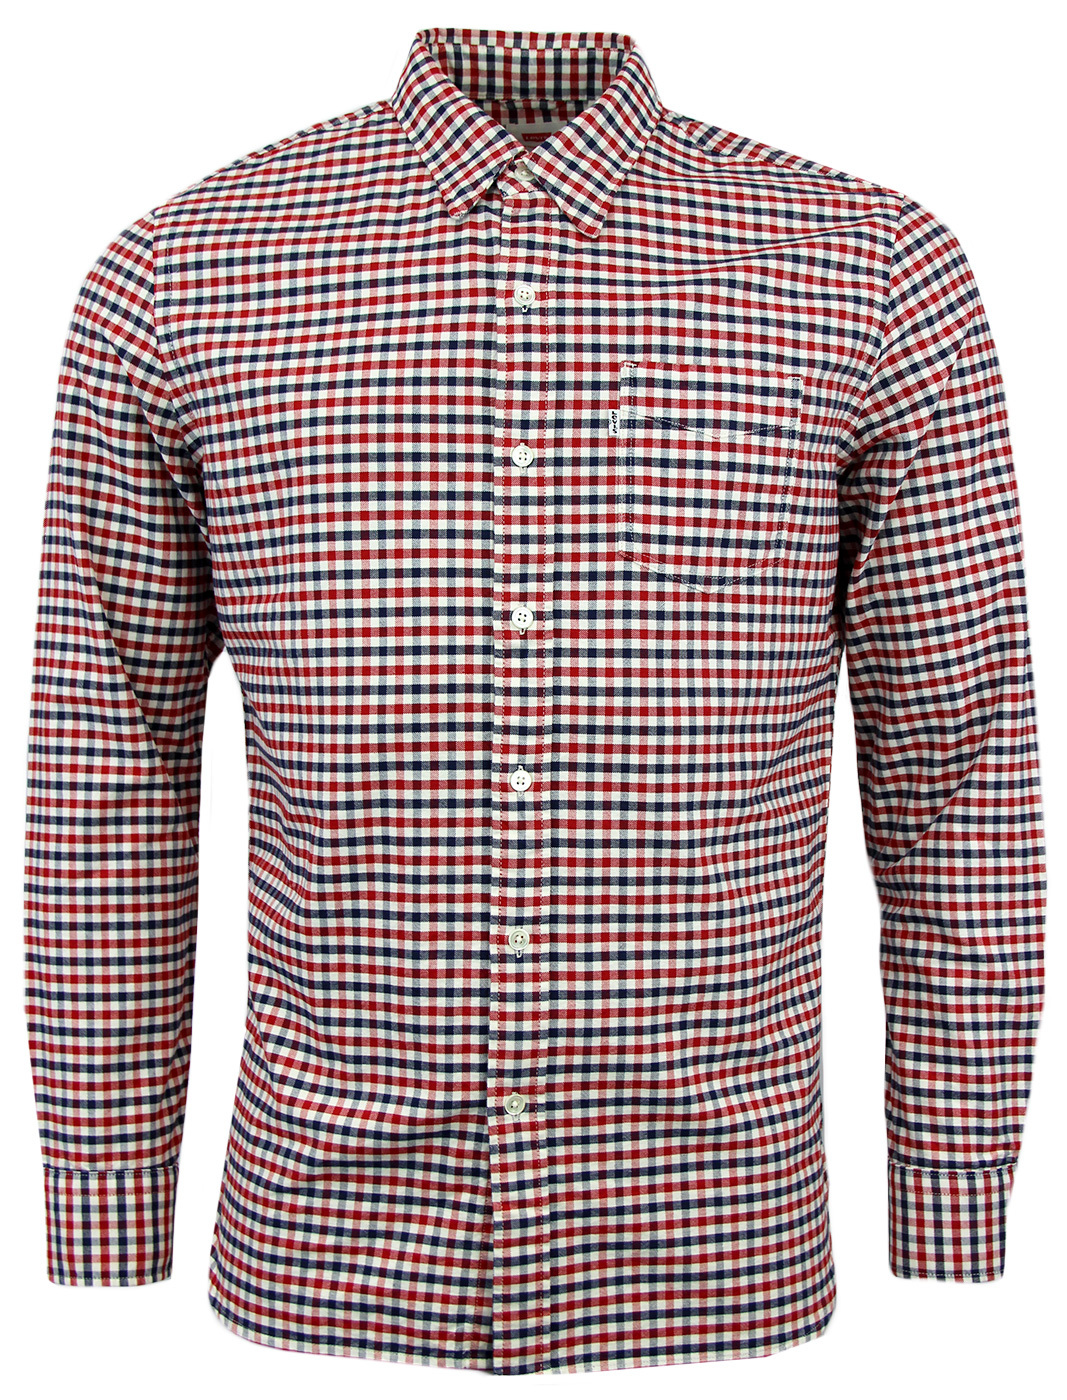 Sunset LEVI'S® Retro Mod 1960s Gingham Shirt